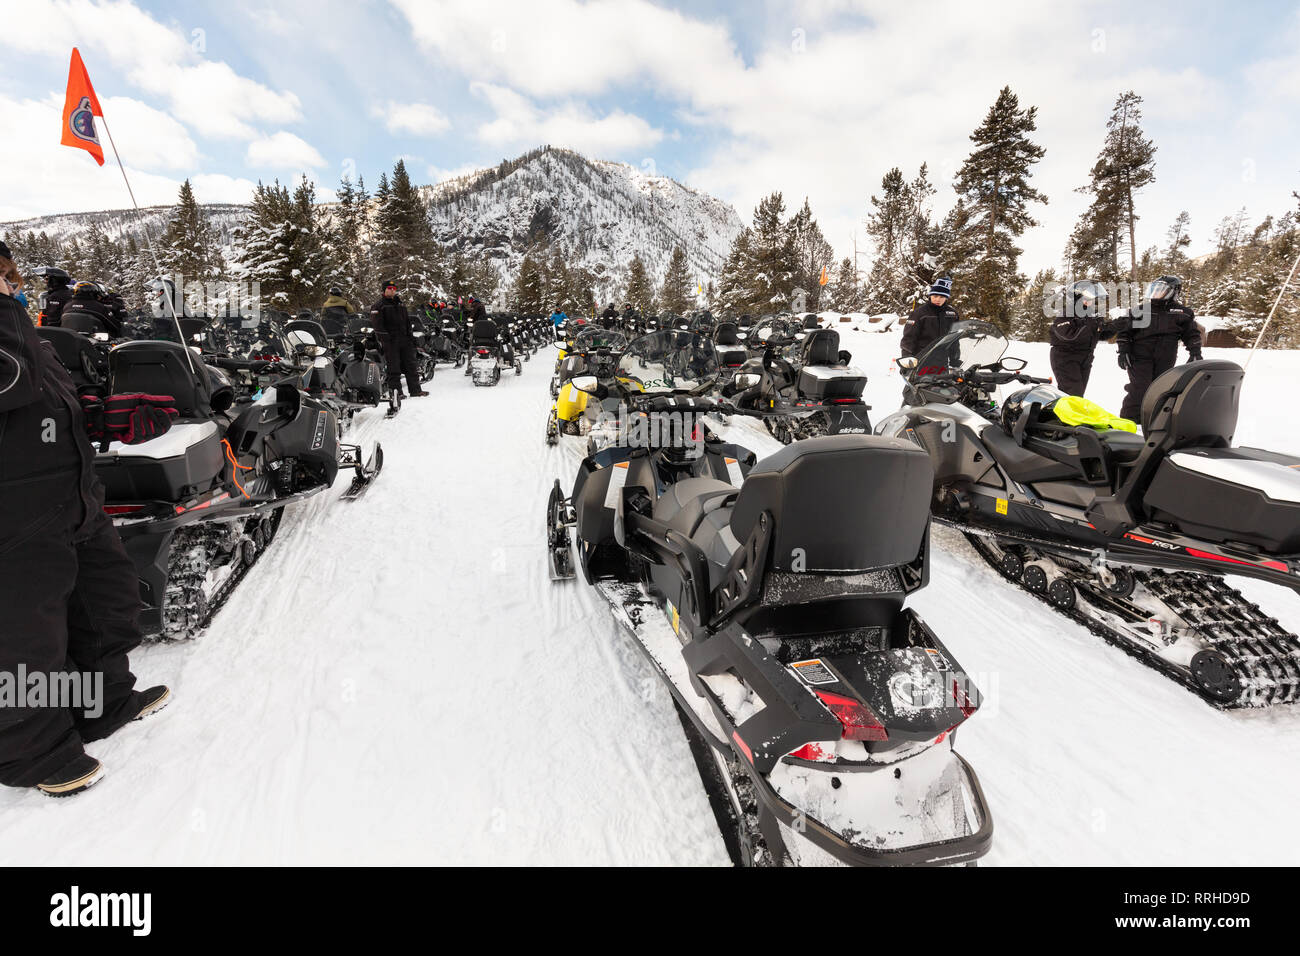 Snowmobiles park at the Madison Warming Hut February 19, 2019 in Yellowstone National Park, Wyoming. - Stock Image